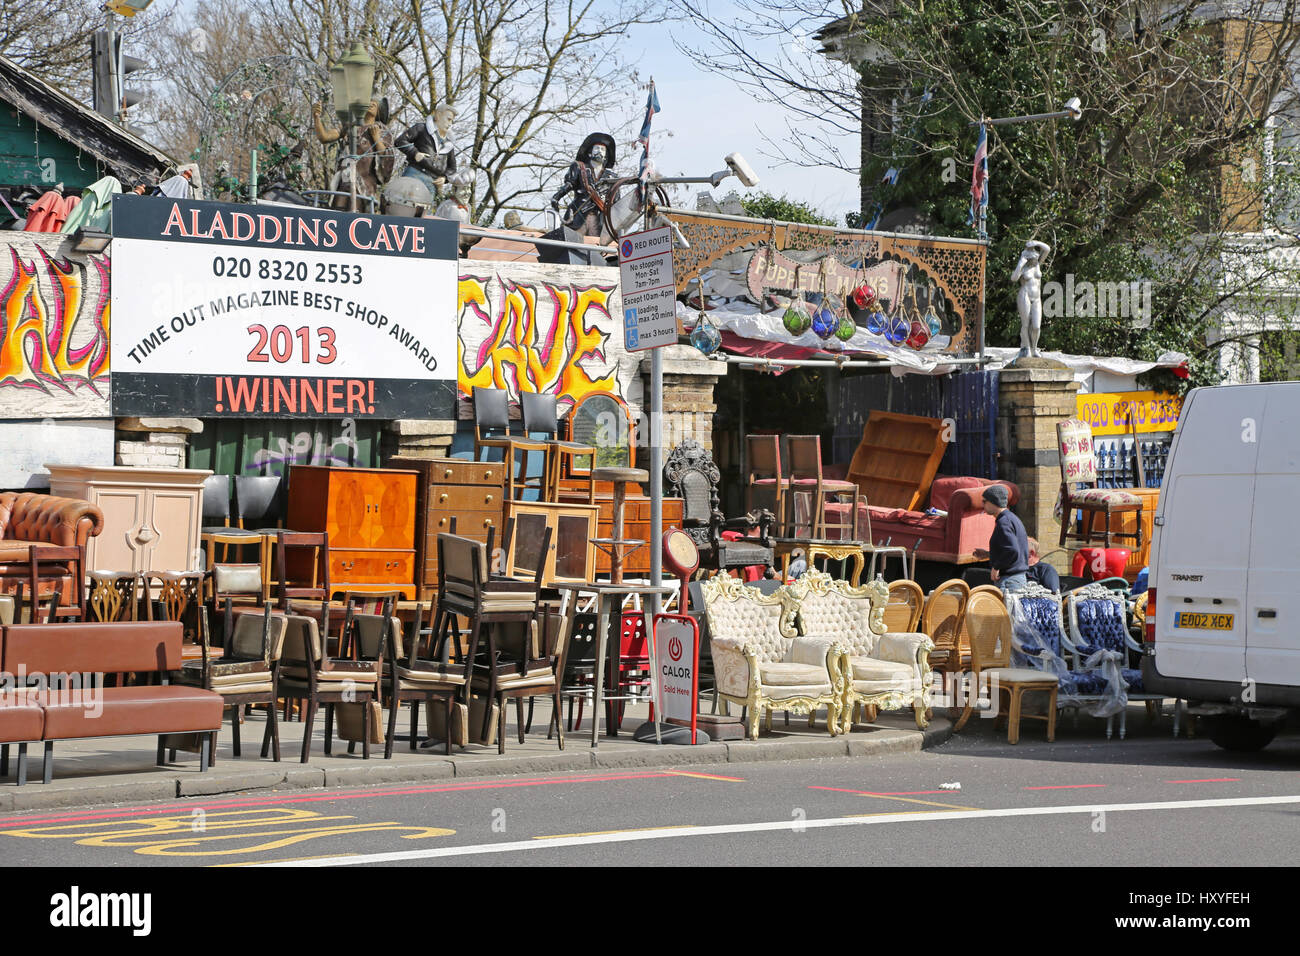 Aladin's Cave, a second-hand furniture store in Lewisham, southeast London.  Famous for packing the pavement with used household goods